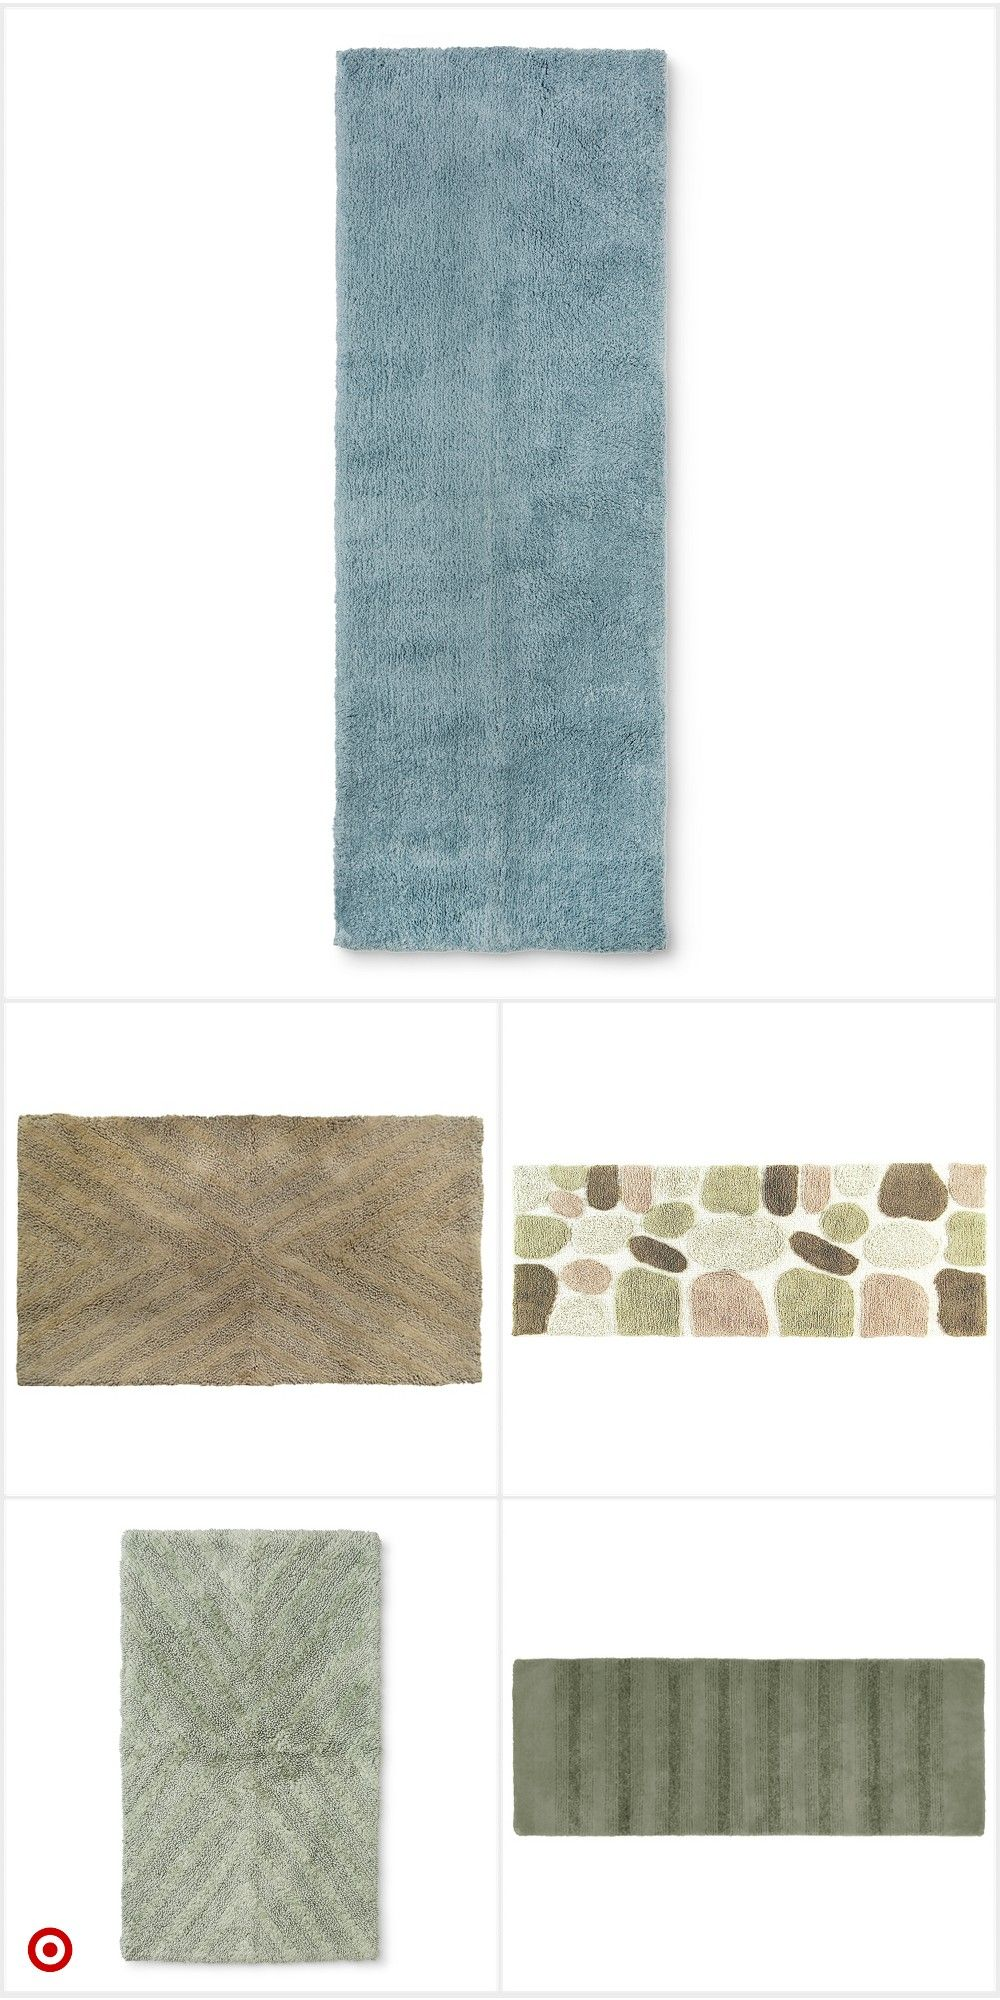 Shop Target For Bath Runner You Will Love At Great Low